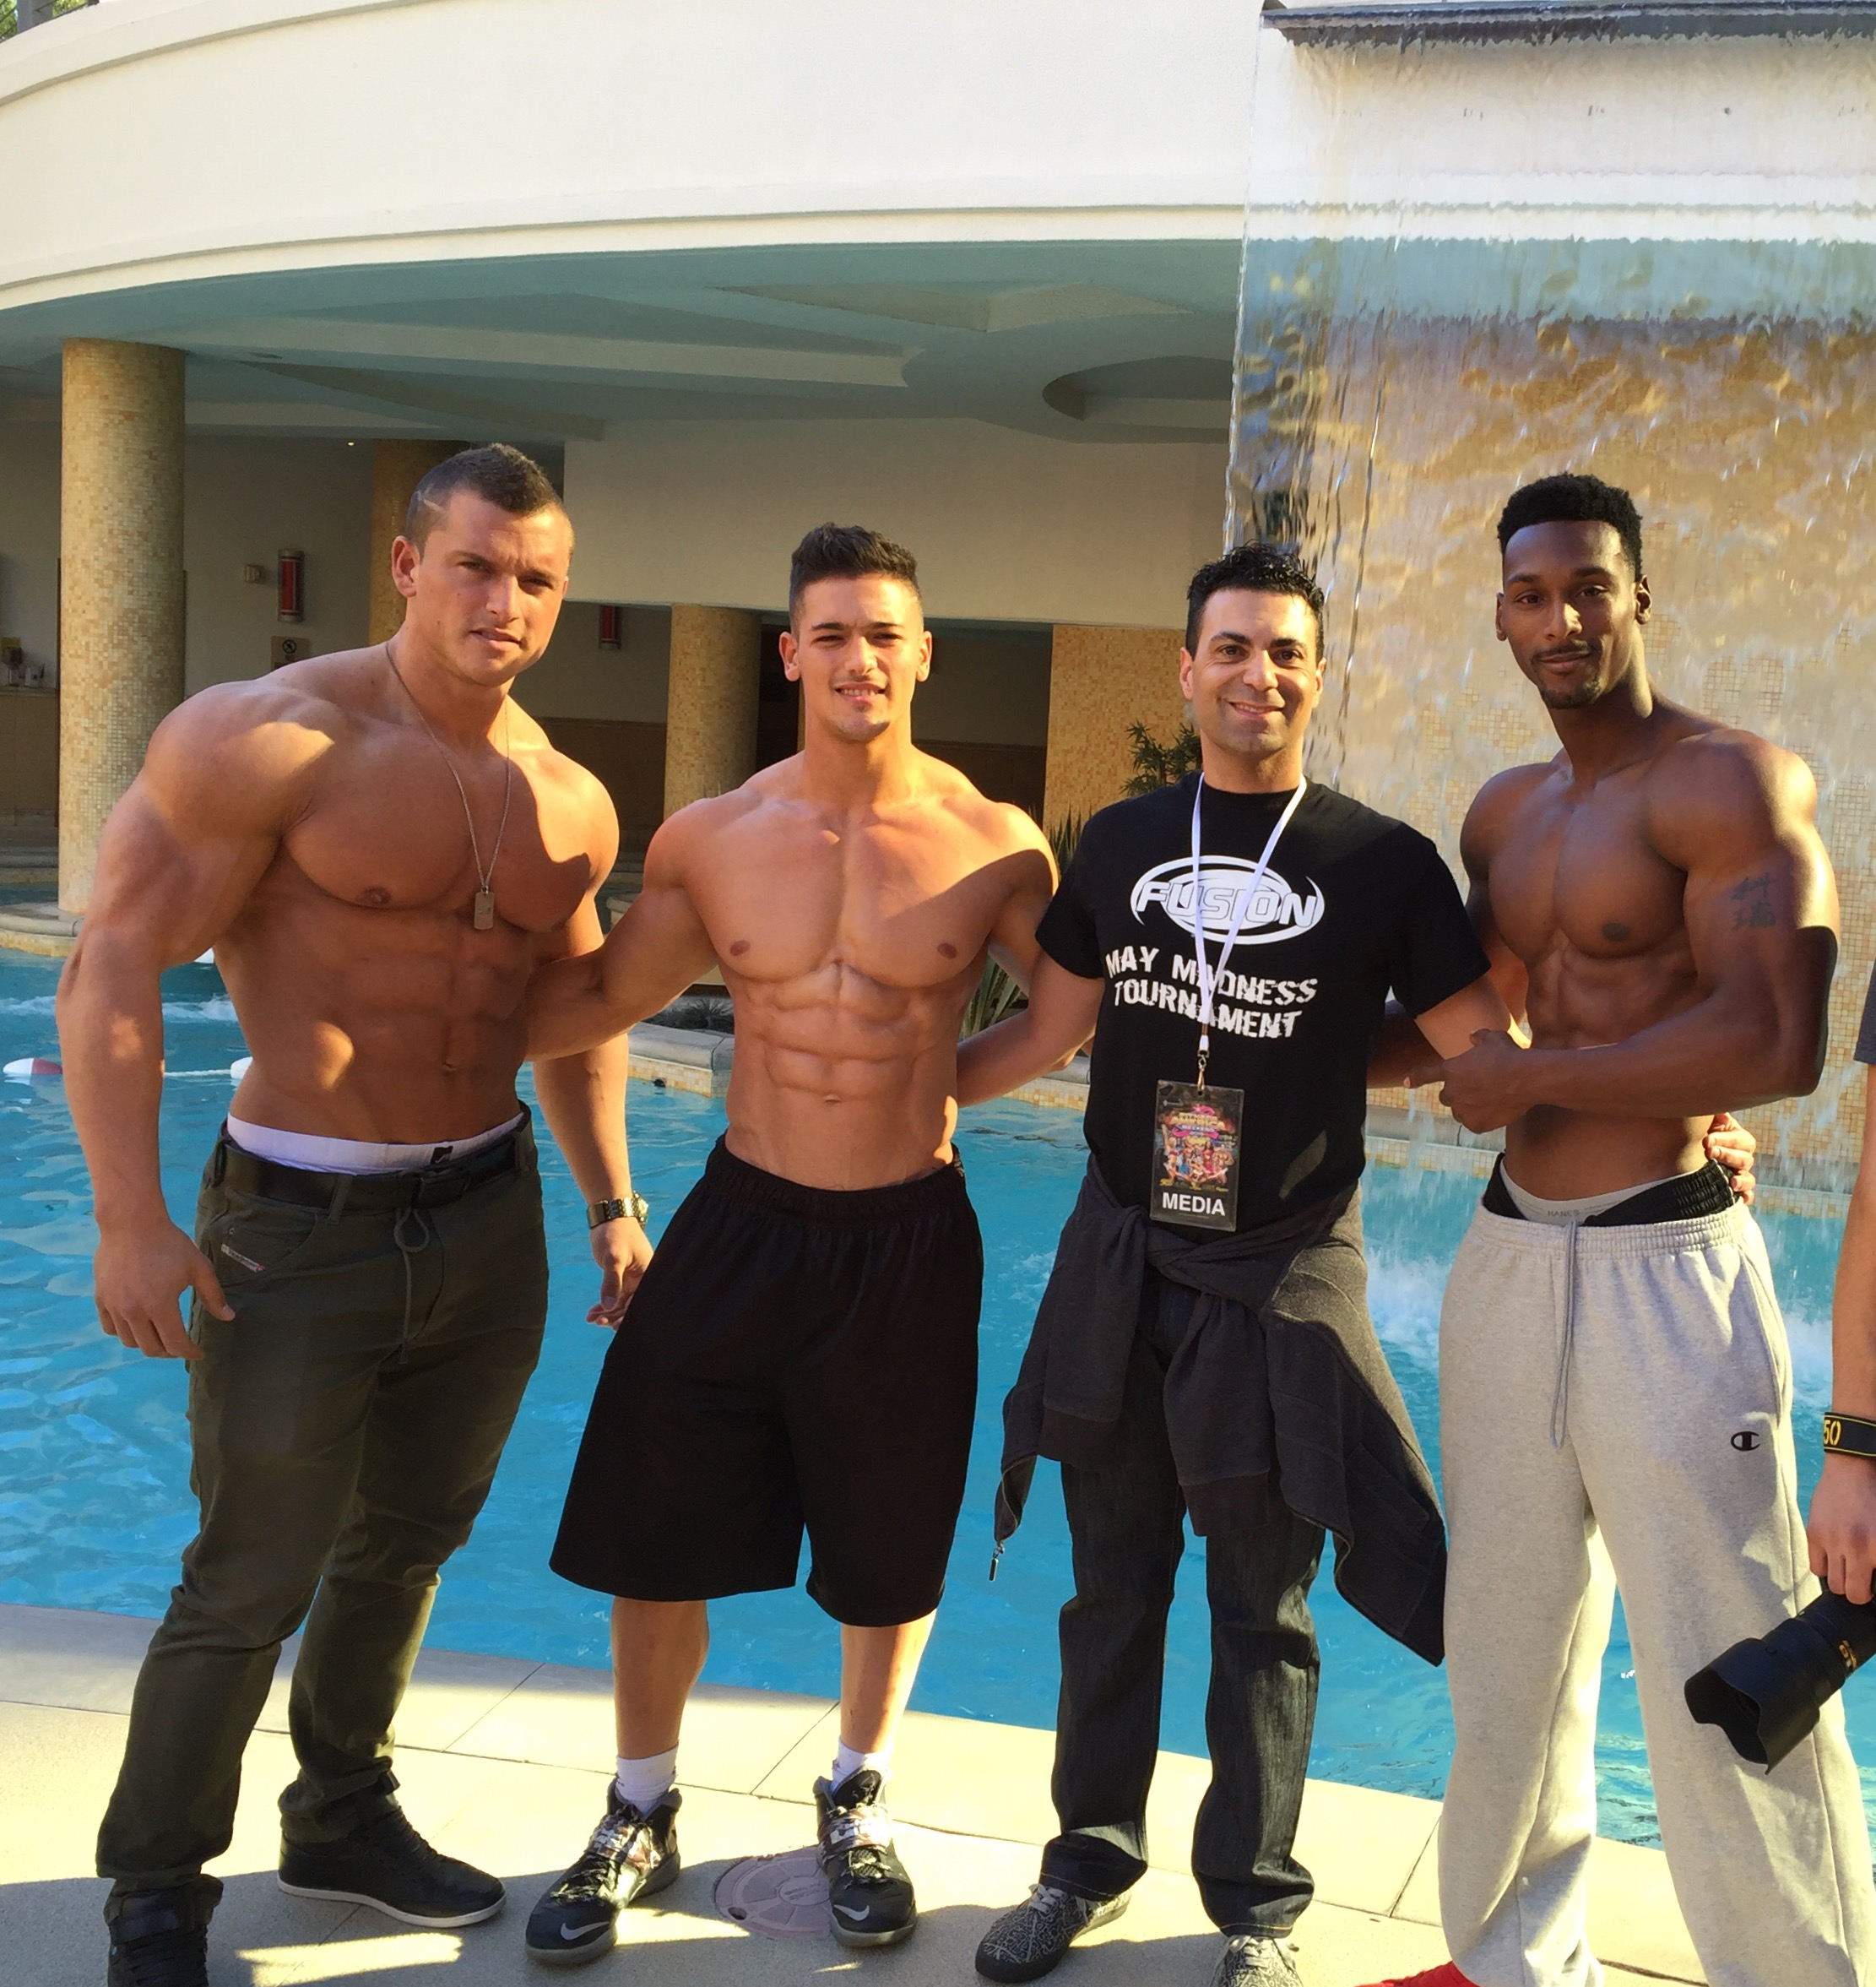 MuscleMania & Fitness America: Media